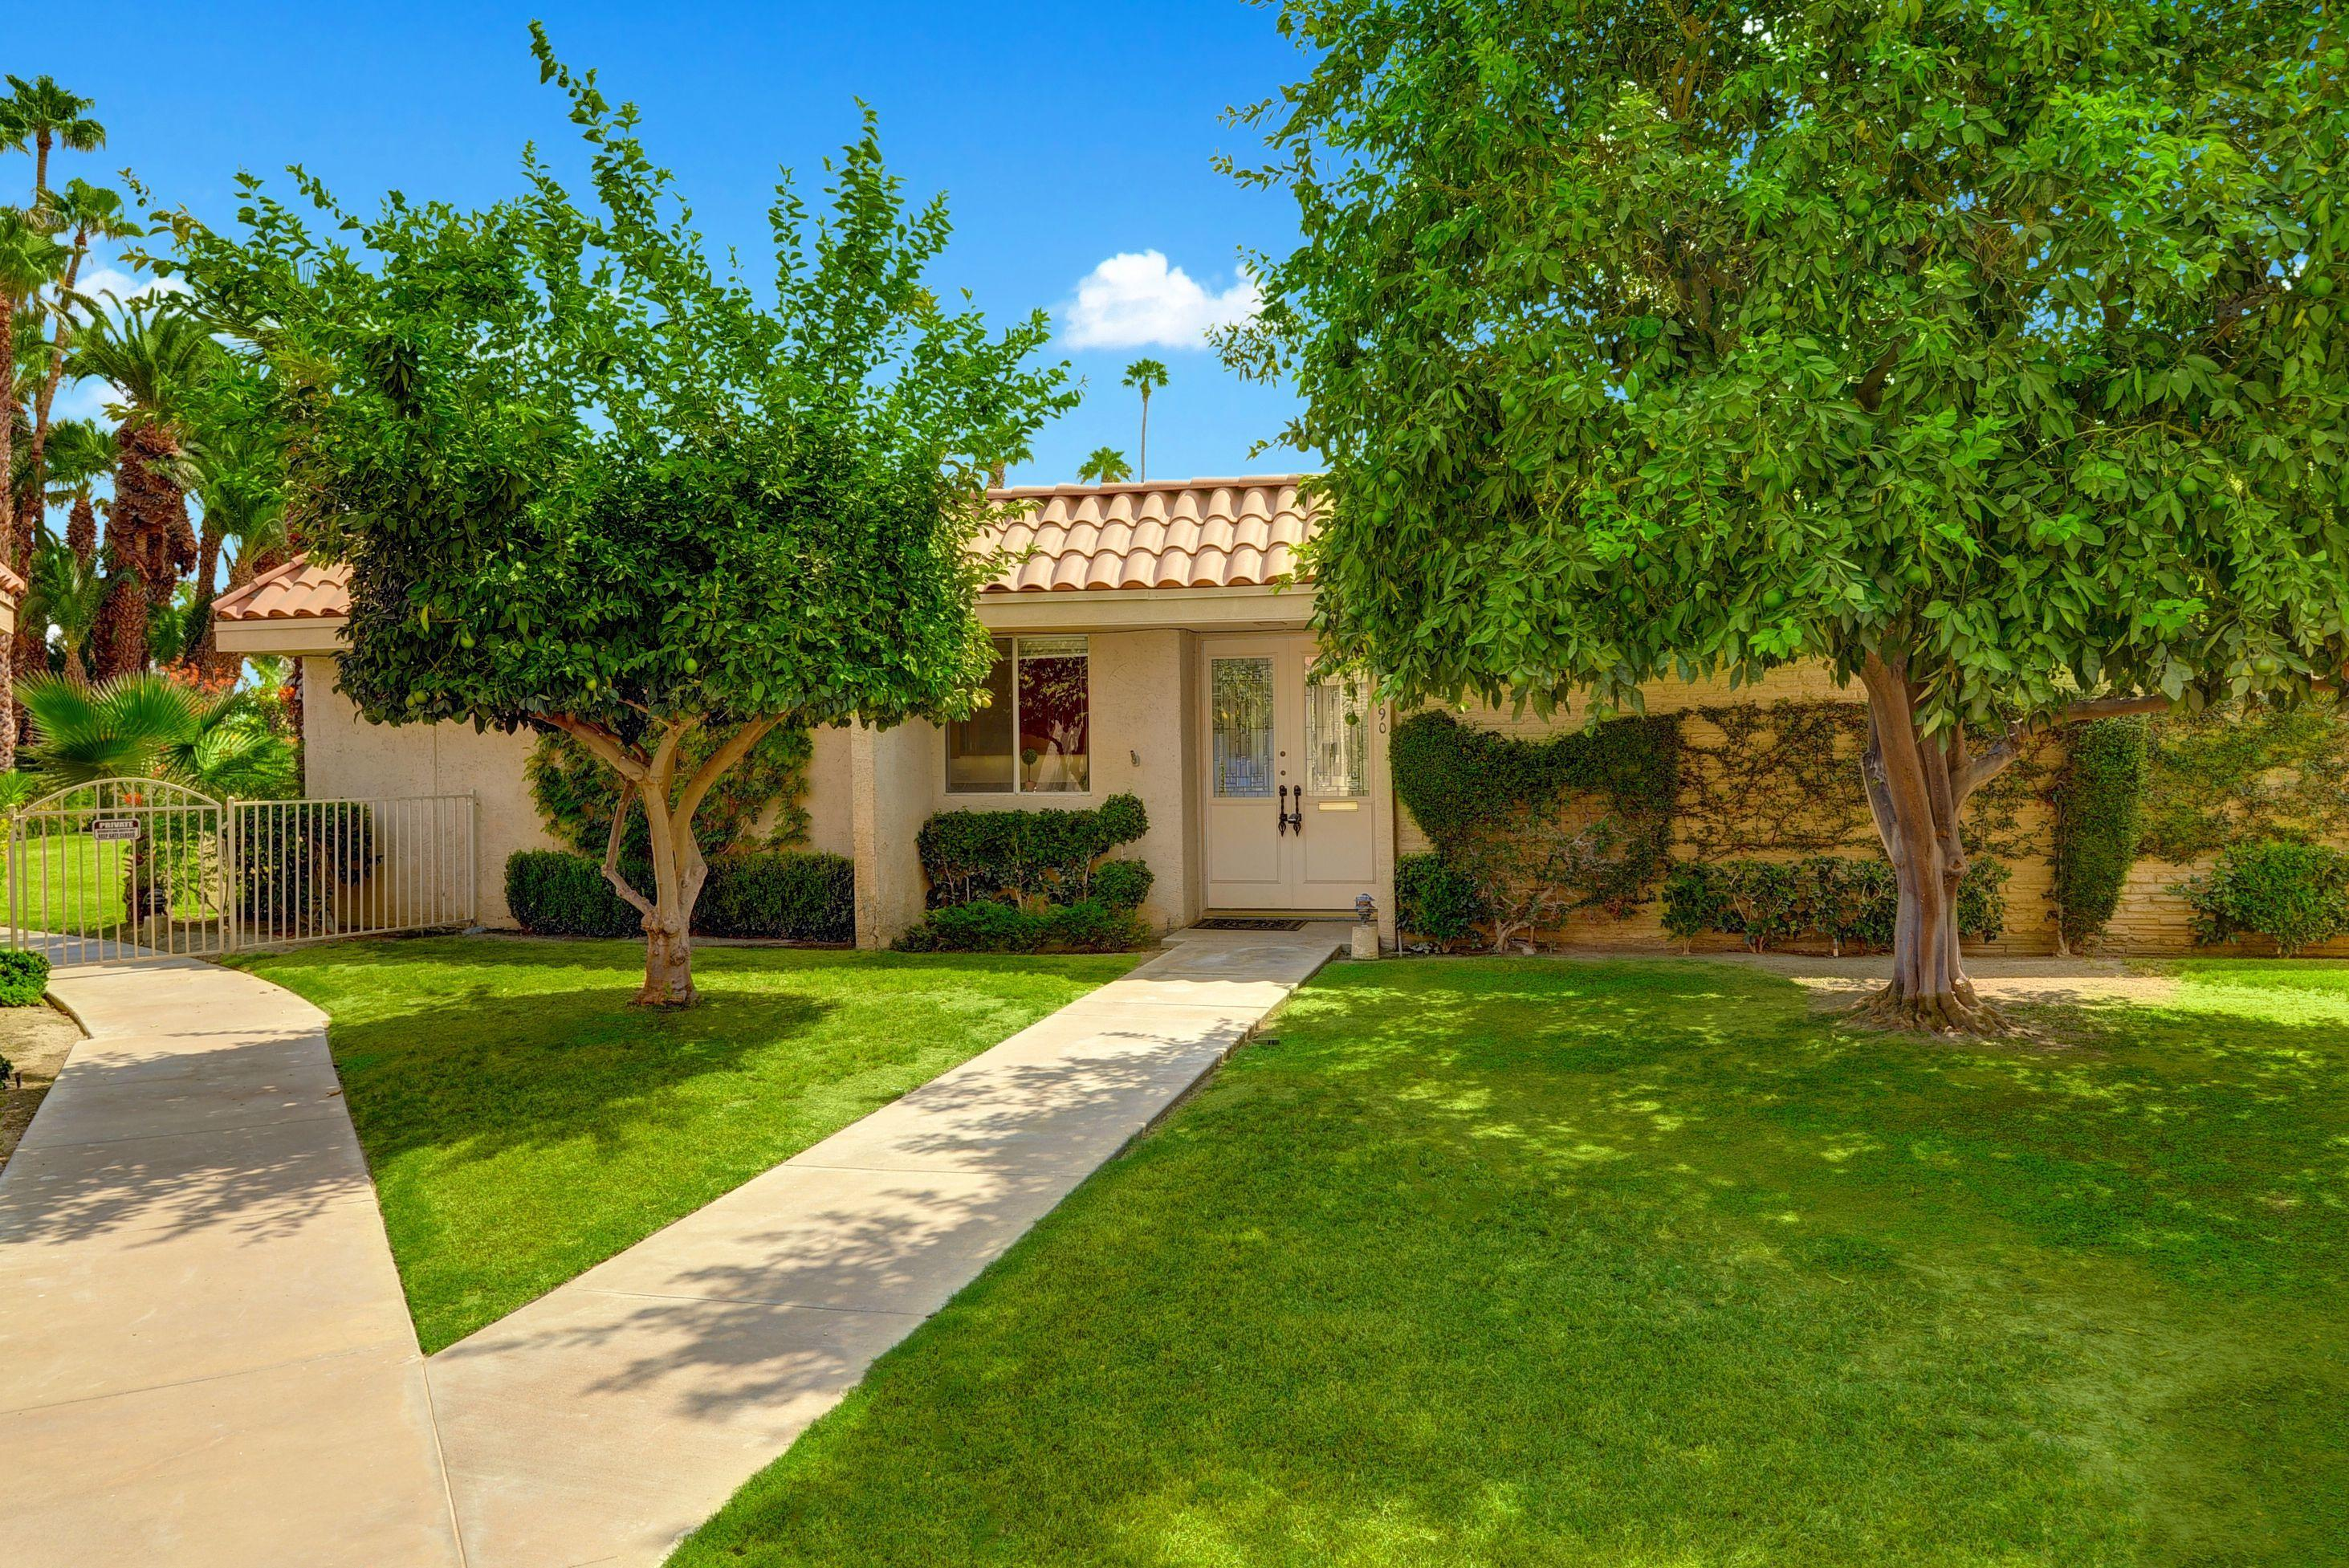 Welcome to this spacious one level floor plan condo in Indian Wells Country Club.  It features  an open and light living and dining room area with high ceilings. It opens up to the covered tile patio just steps to the community pool with amazing views. Kitchen has slab granite  counters with a garden view. 2 spacious bedrooms suites with walking closets, 2 baths. Main bath has dual vanities and a large shower.   Both suites enjoy gorgeous mountain views and  a direct access to their private enclosed courtyard  . Individual laundry room with extra space. It has a newer A/C and roof.